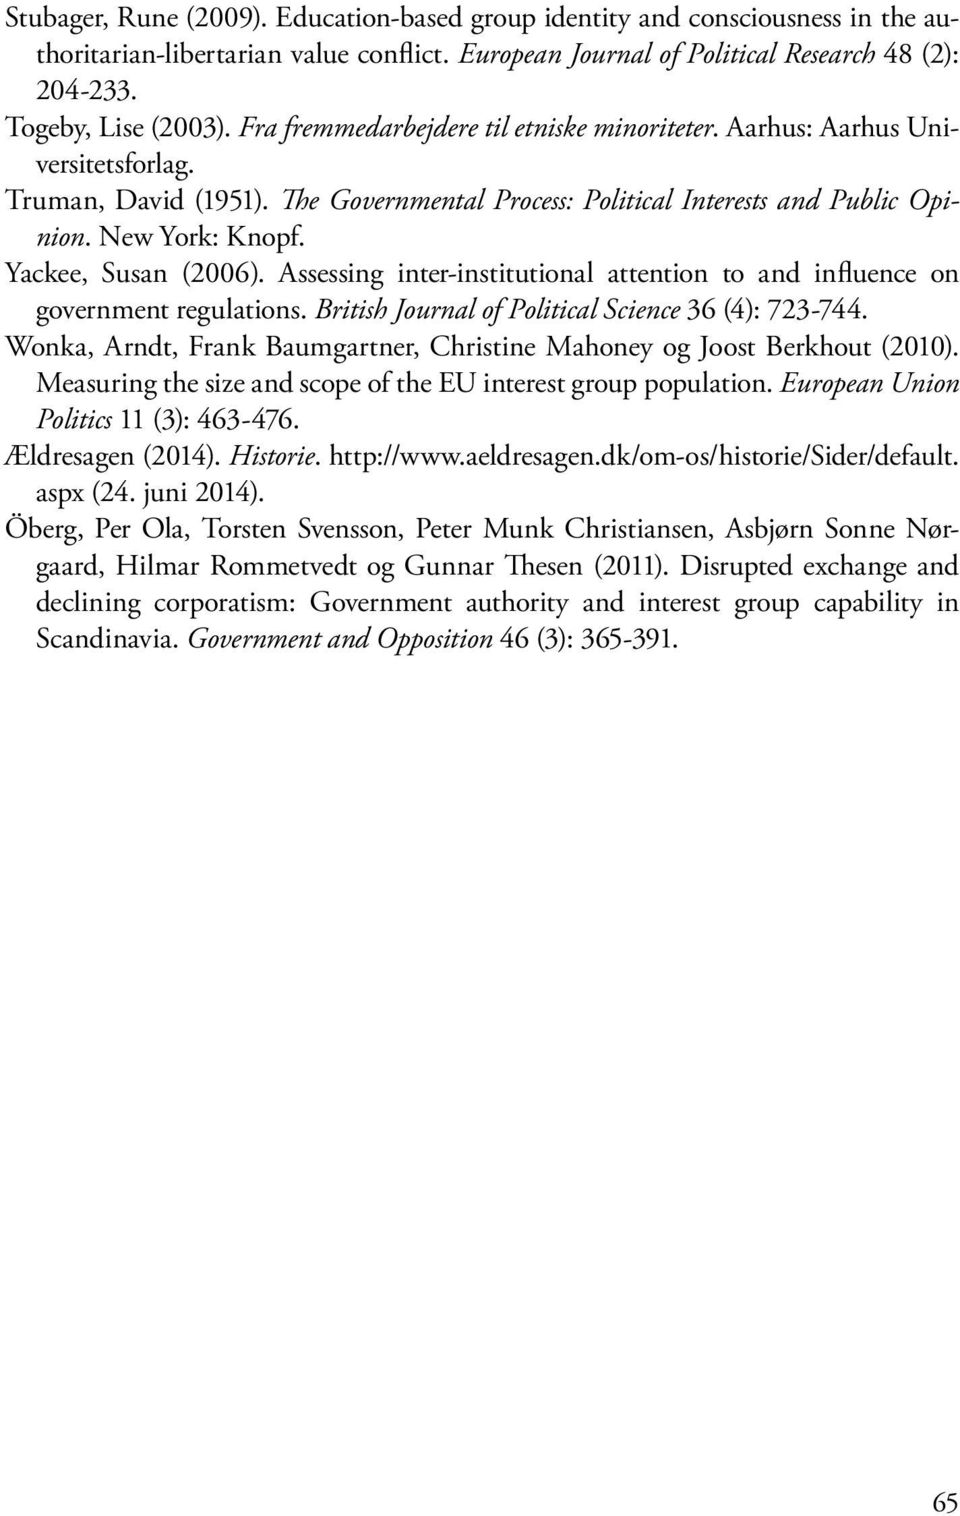 Yackee, Susan (2006). Assessing inter-institutional attention to and influence on government regulations. British Journal of Political Science 36 (4): 723-744.